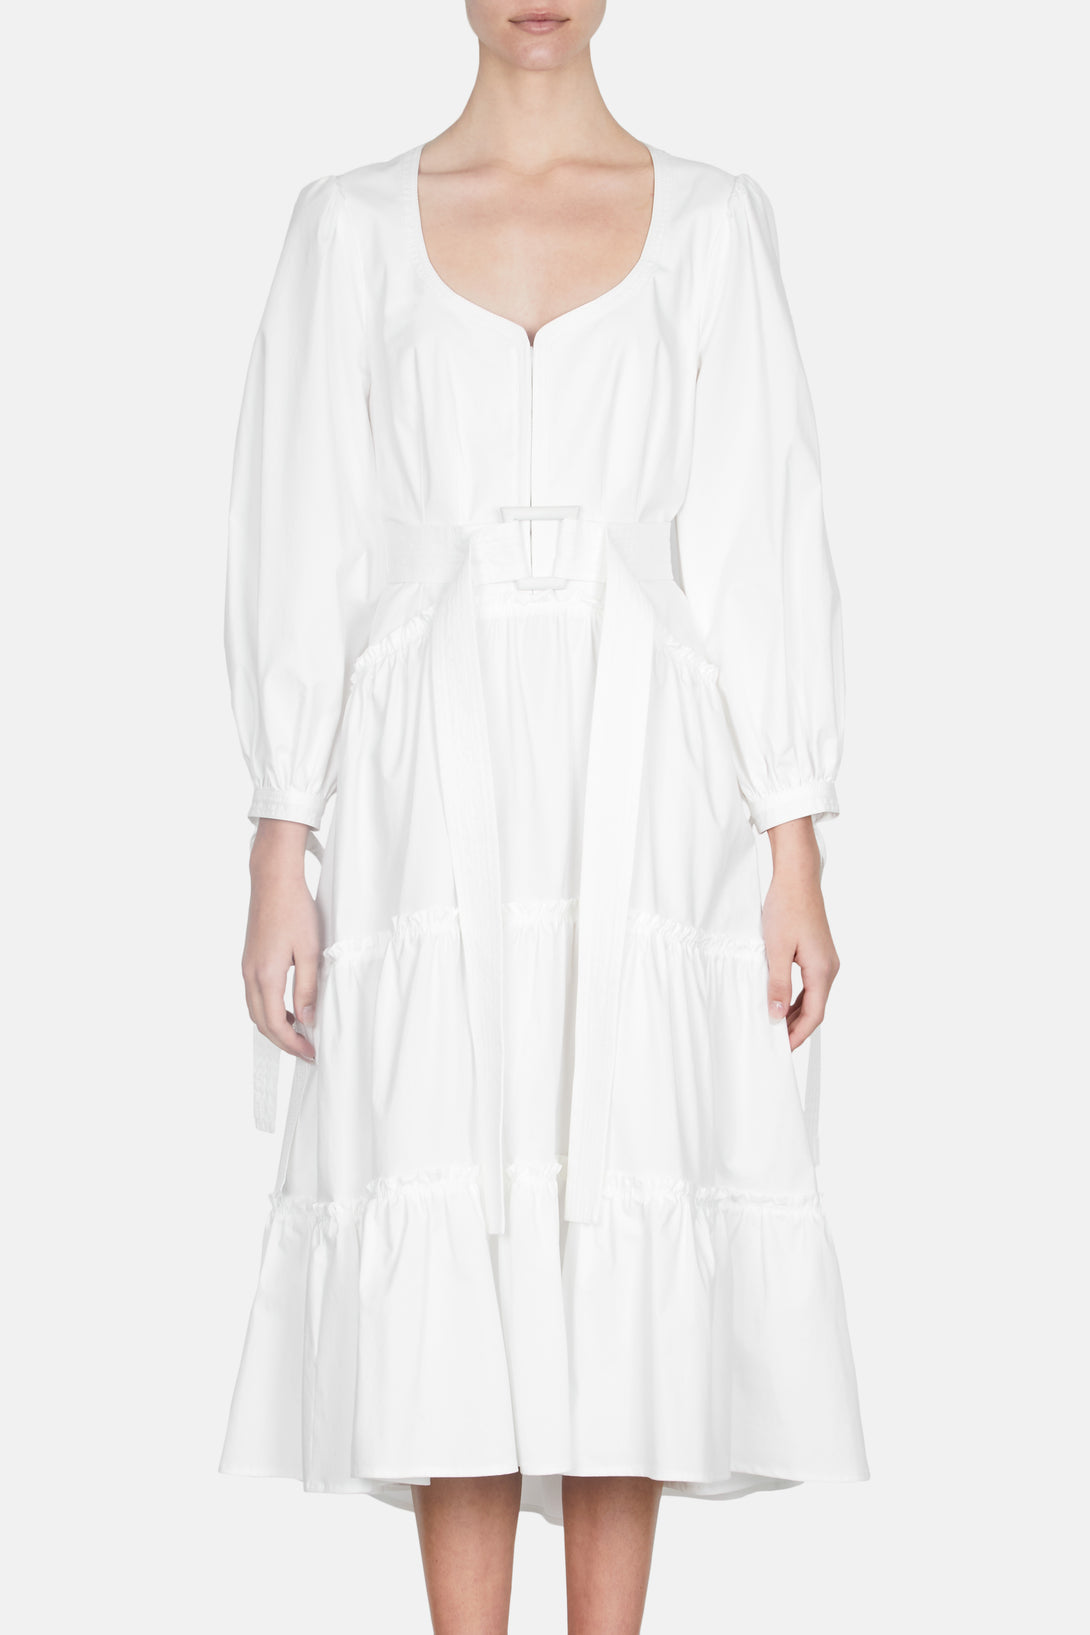 Cotton Puff Sleeve Dress - White